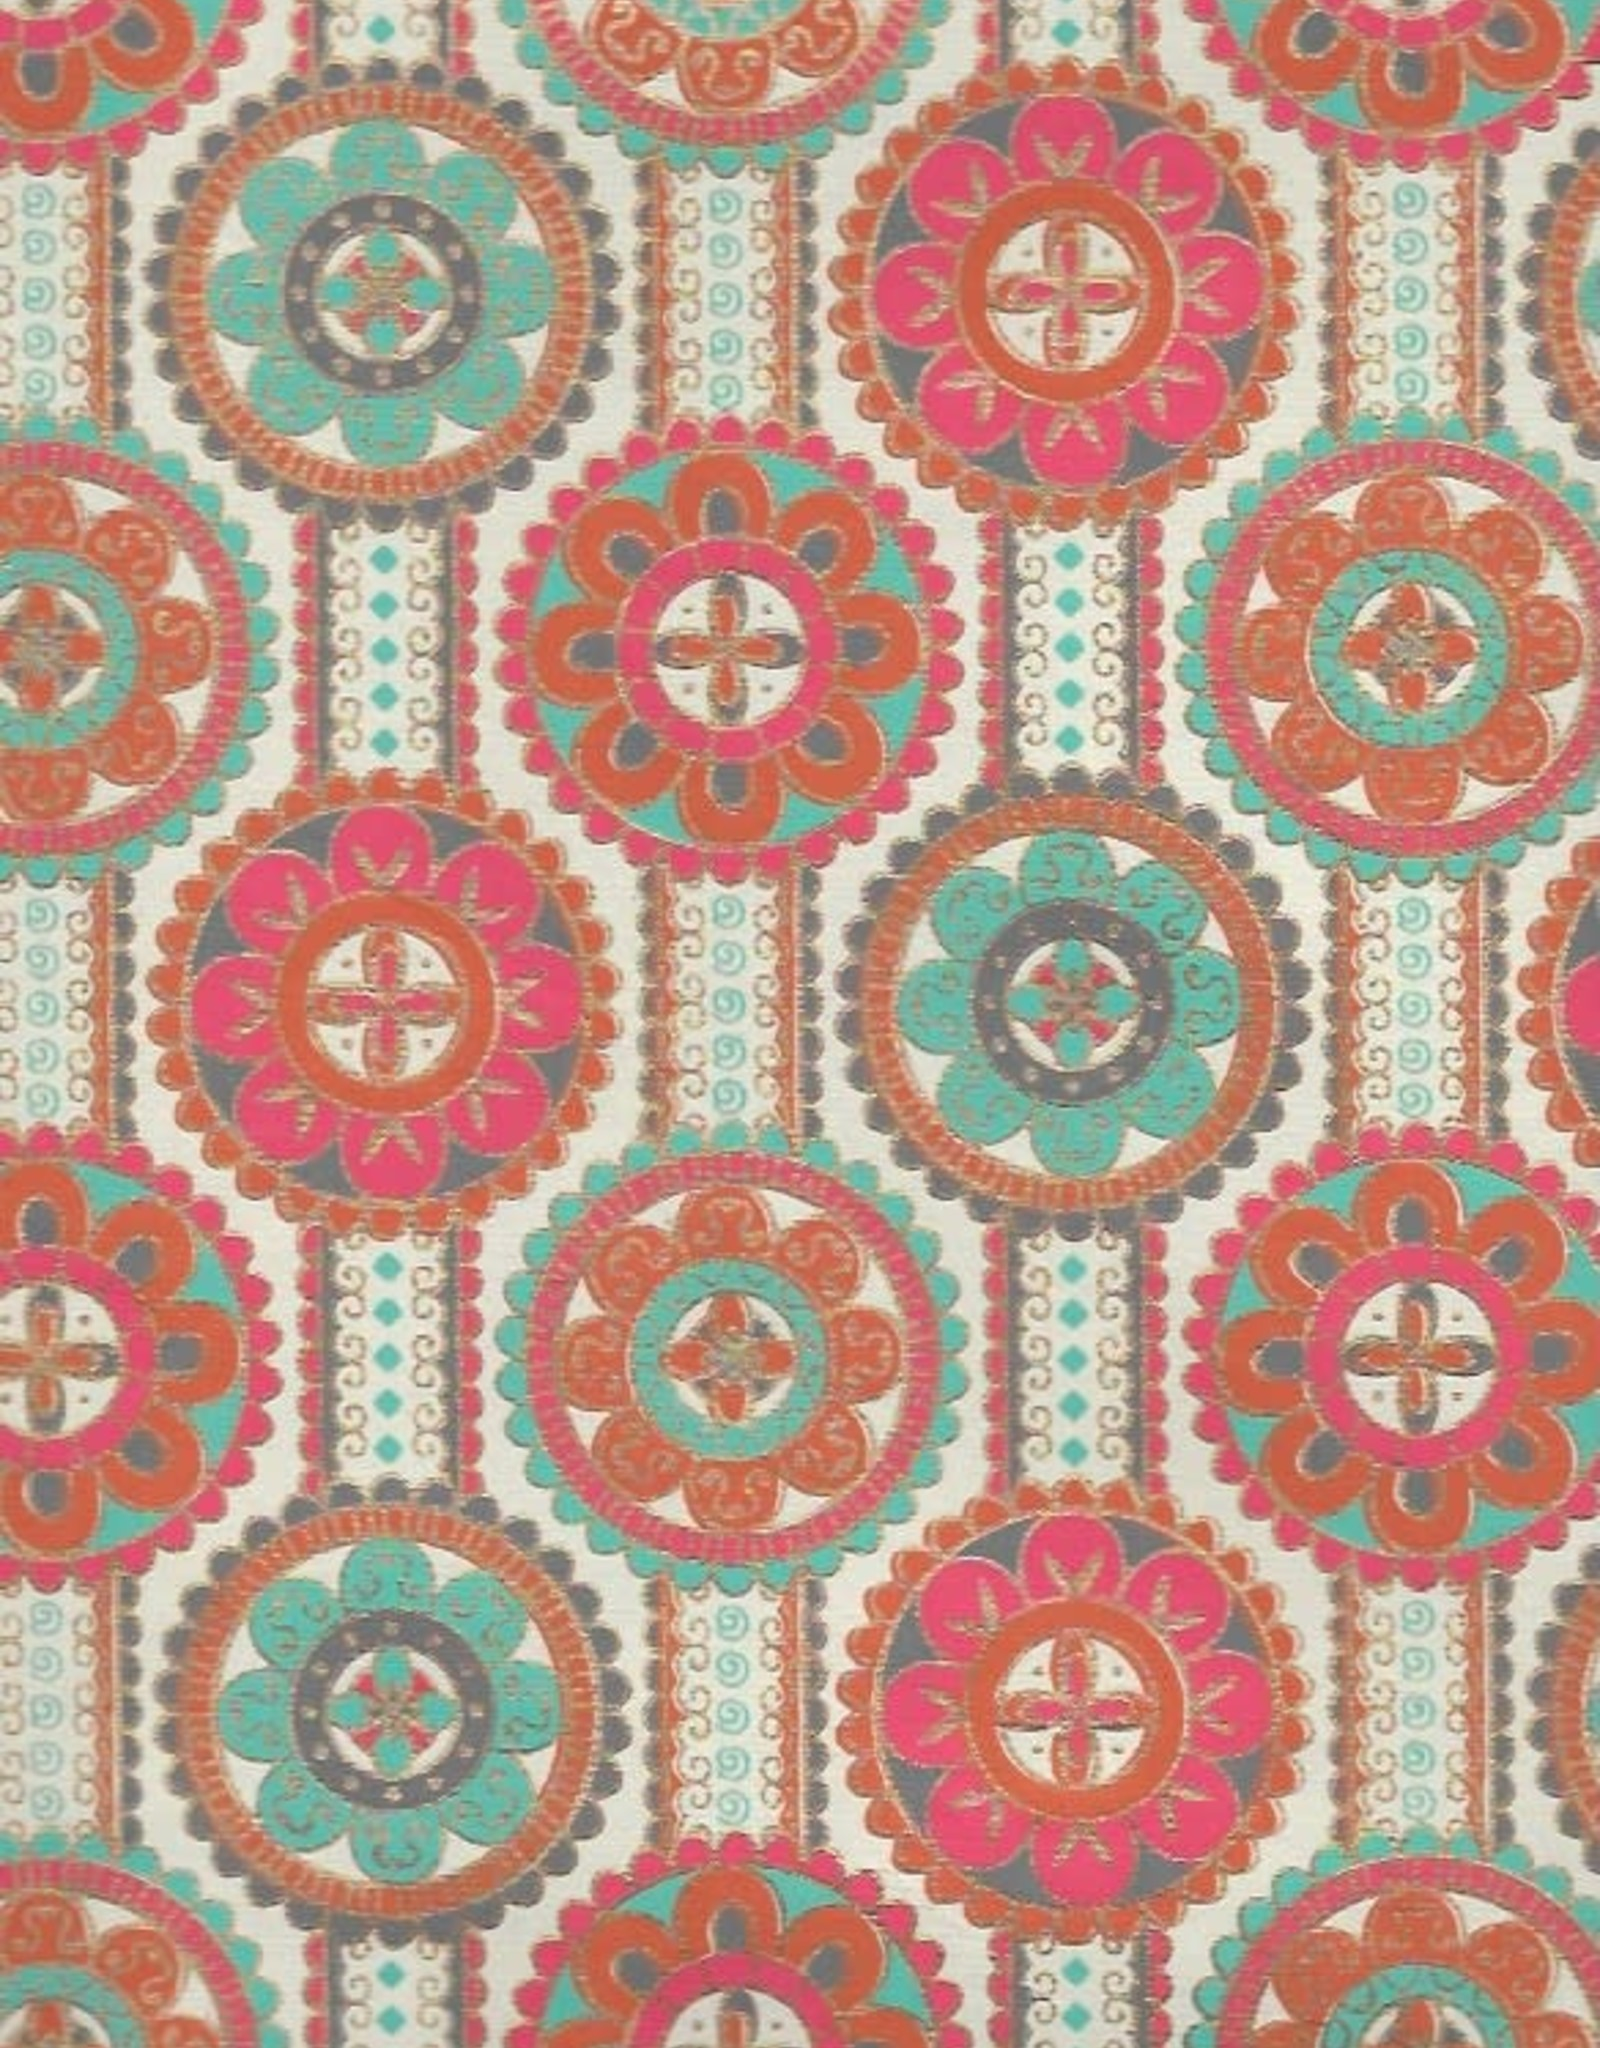 "Flower Mandalas on Ribbons with Orange, Red, Turquoise, Gold on Cream, 22"" x 30"""